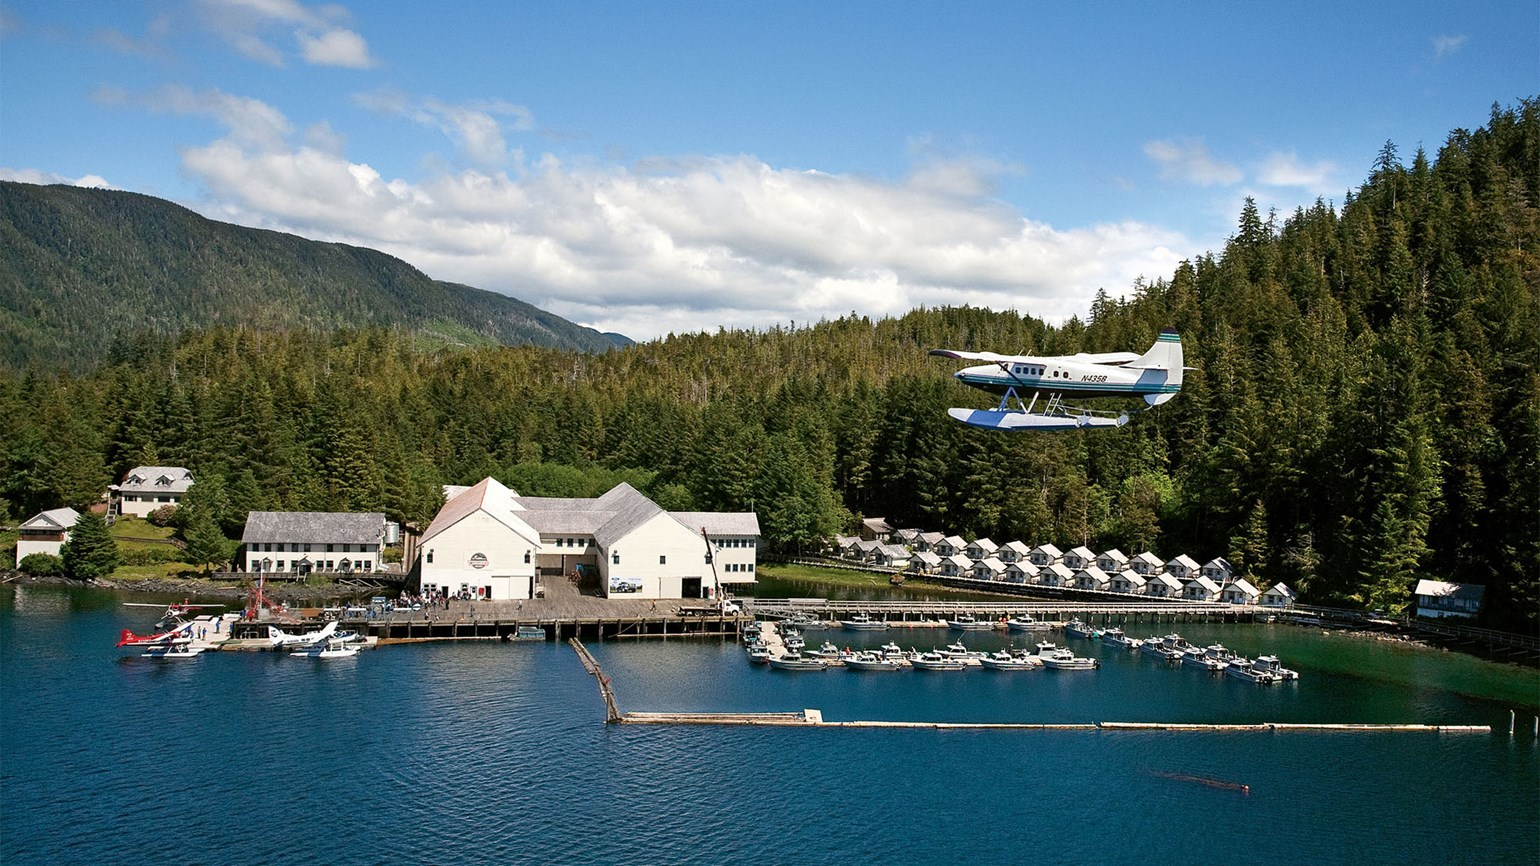 Waterfall Resort: Where salmon is king